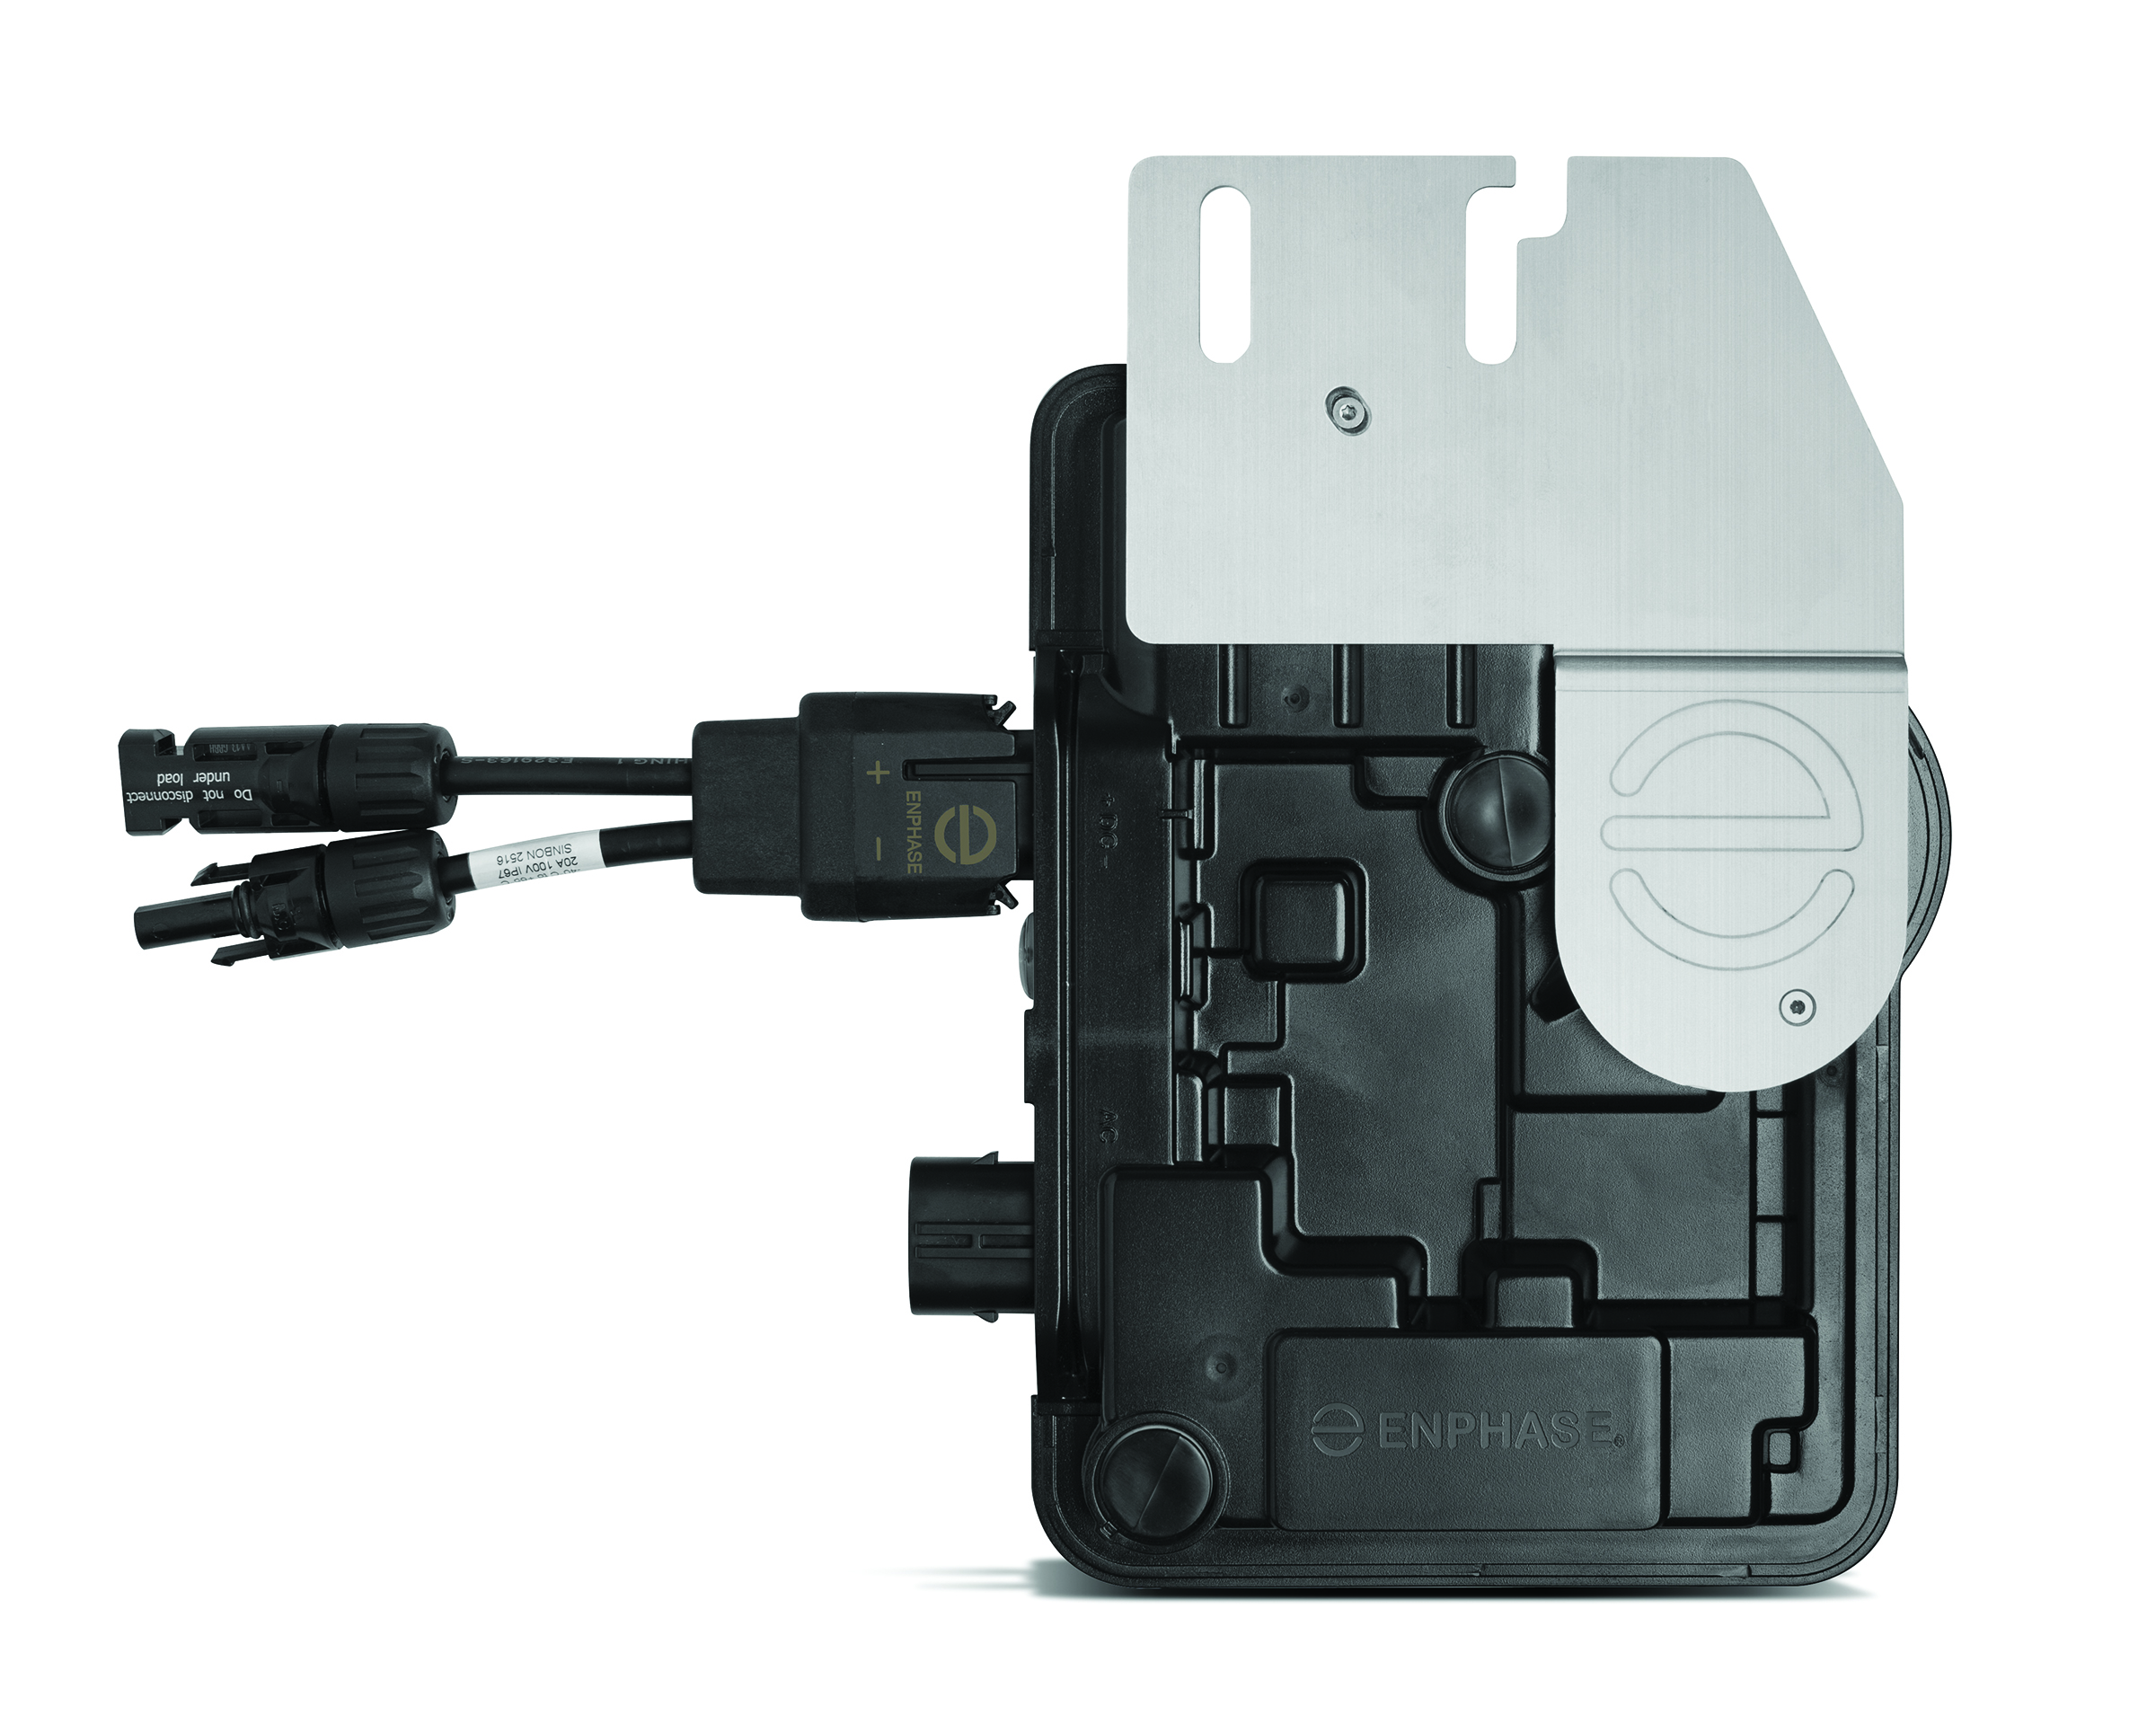 Microinverters are located underneath each solar panel.